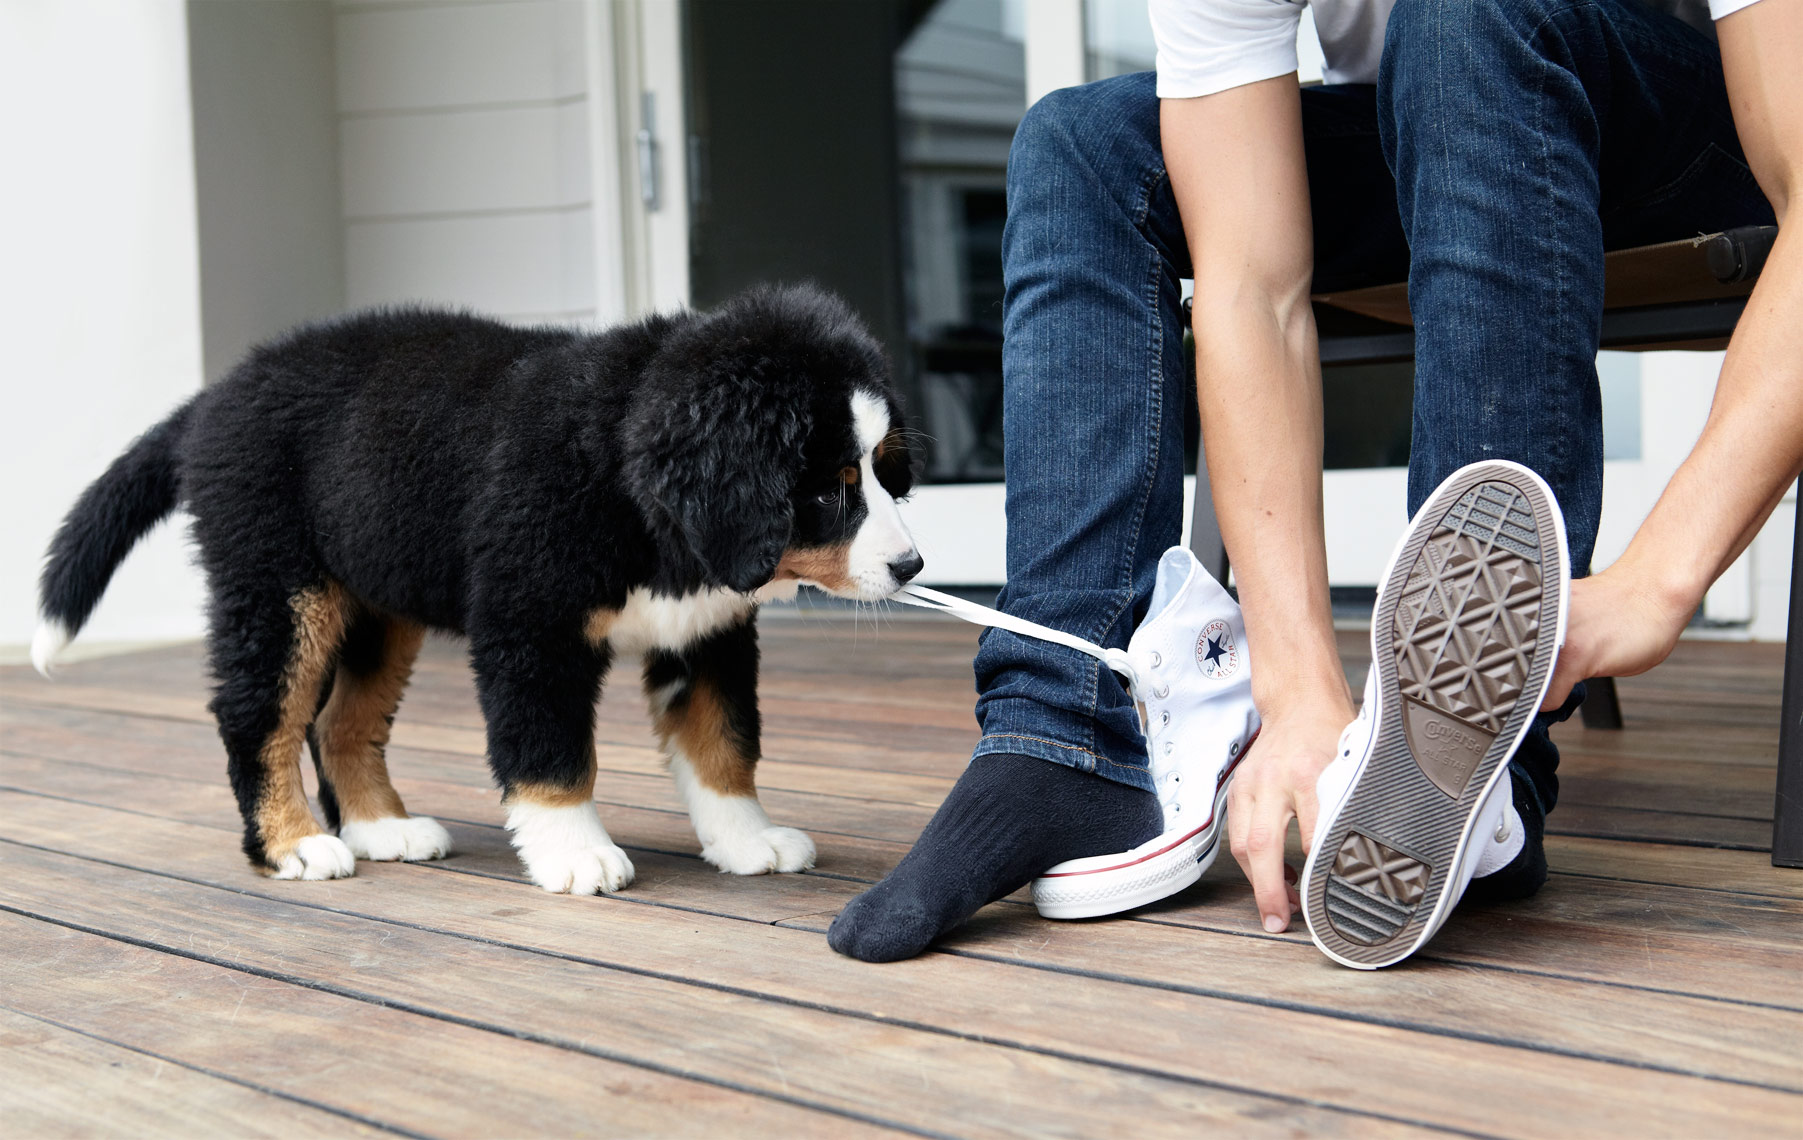 Bernese Mountain dog pulling shoe